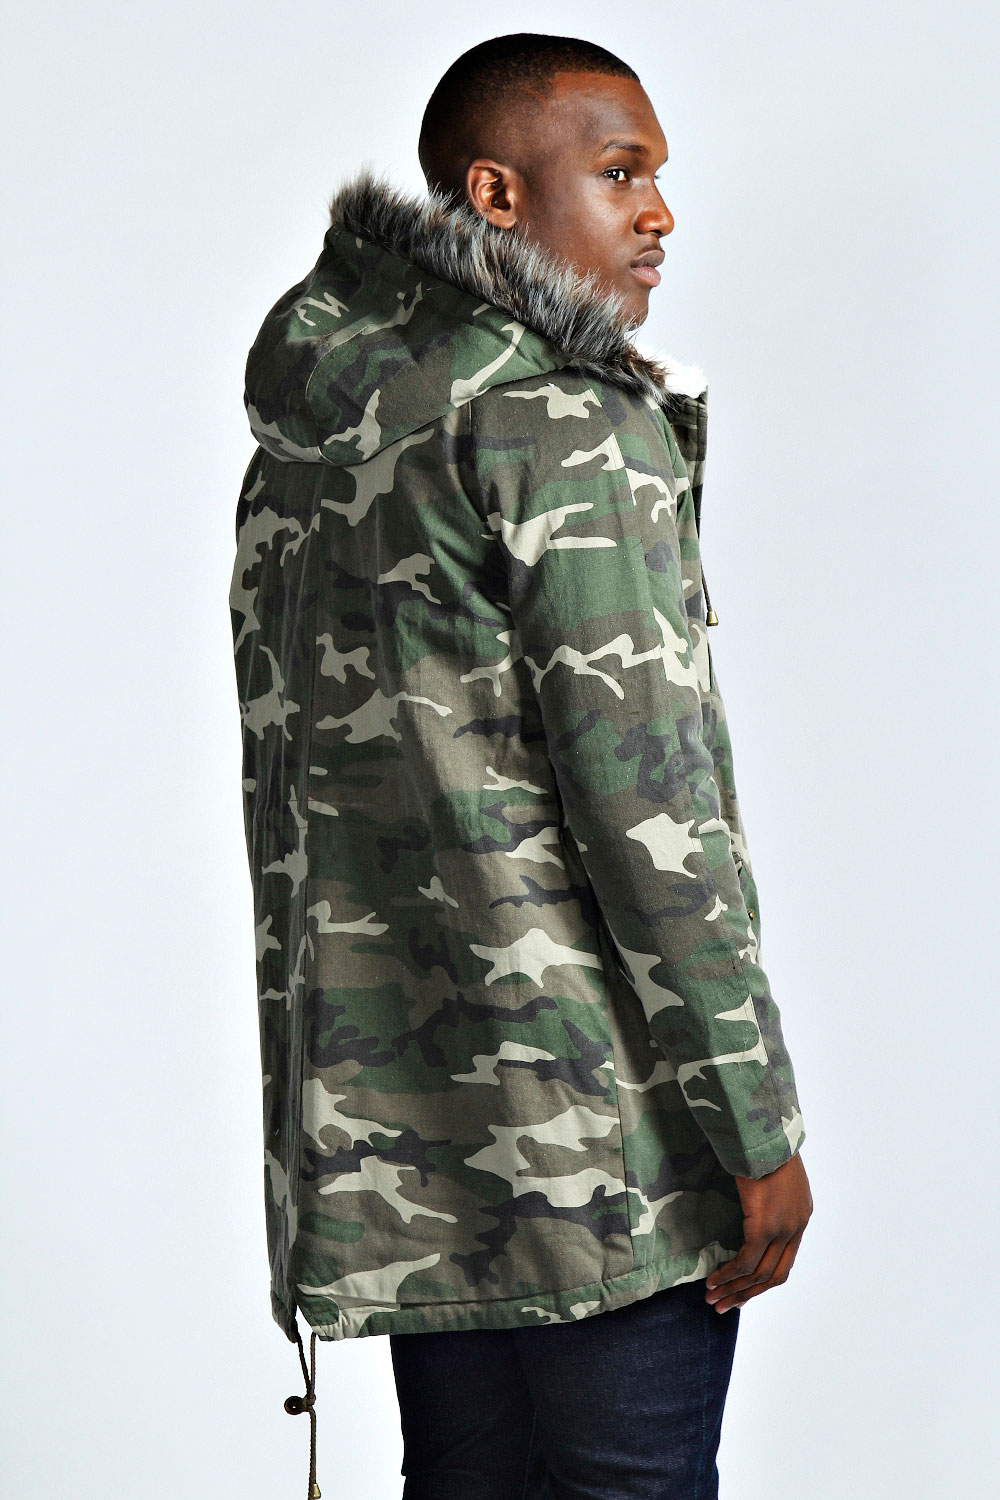 Keep your Camo Hunting Jacket close at hand for those chilly mornings in the woods. The Guide has a huge selection of Fleece Jackets and Hoodies in a variety of camo styles and patterns. Sportsman's Guide's selection of Camouflage Jackets come from the top .